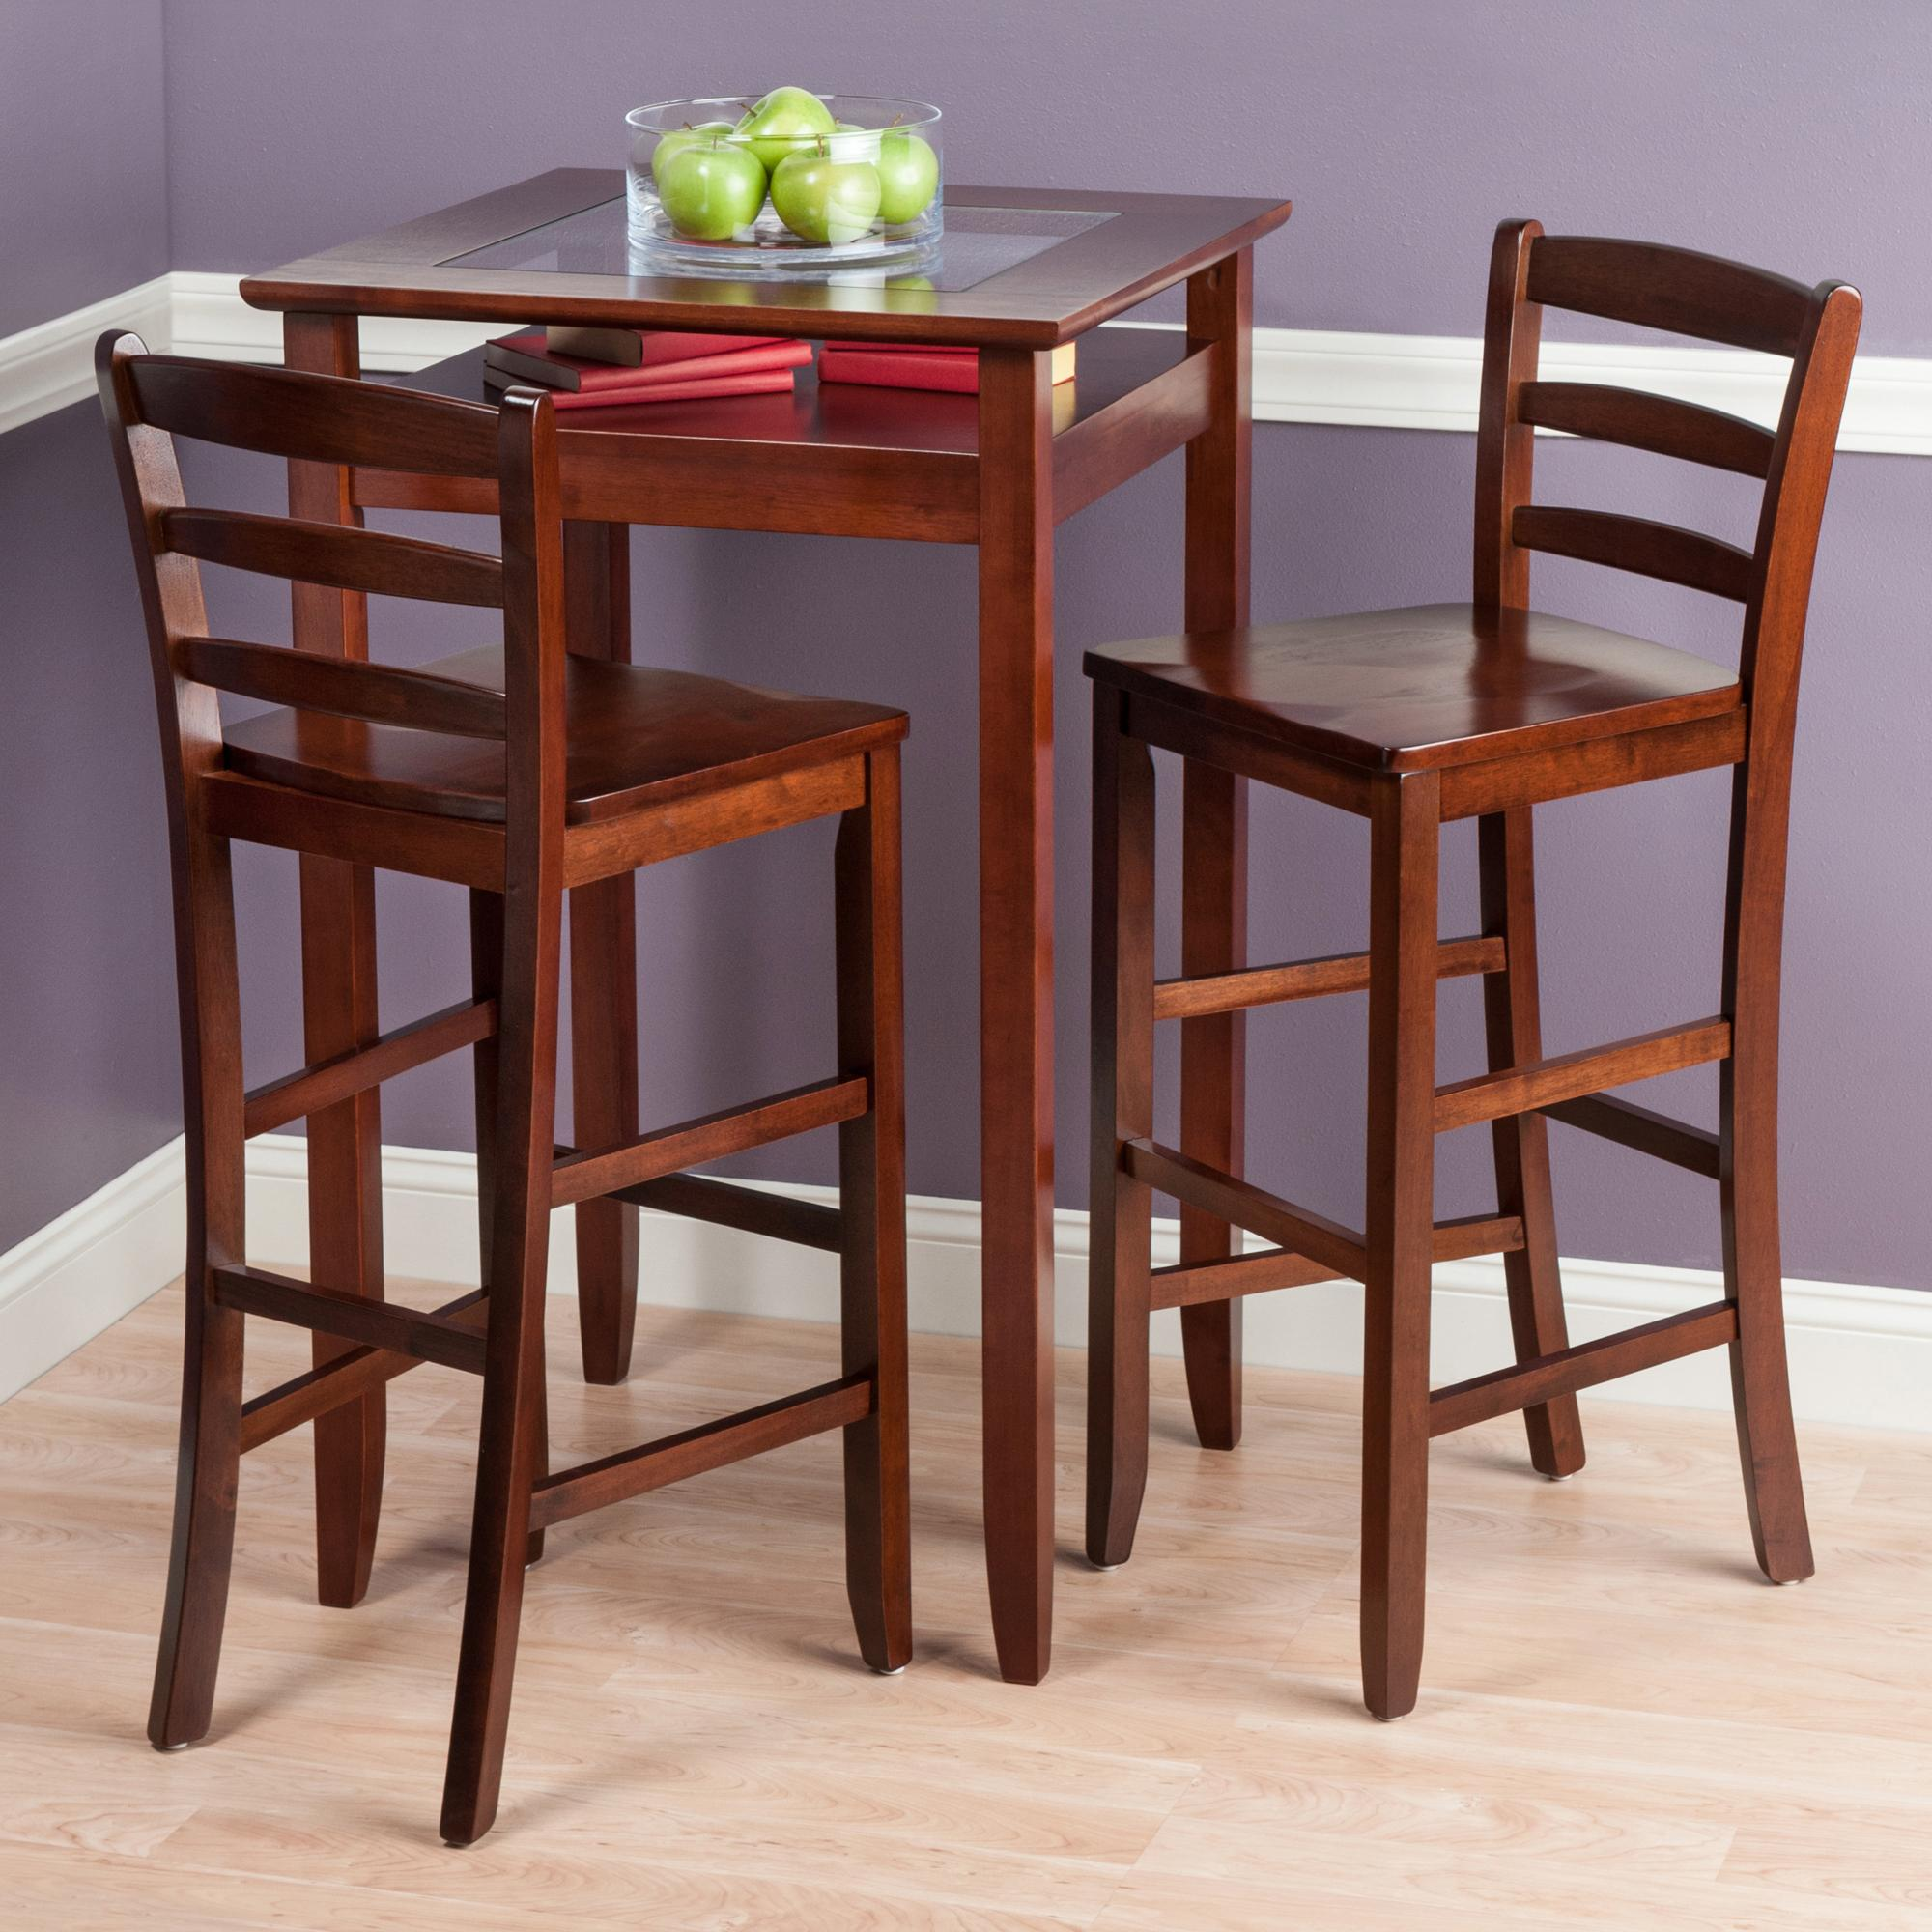 High Table With Stools: Amazon.com: Winsome Wood 94386 Halo Back Stool: Kitchen